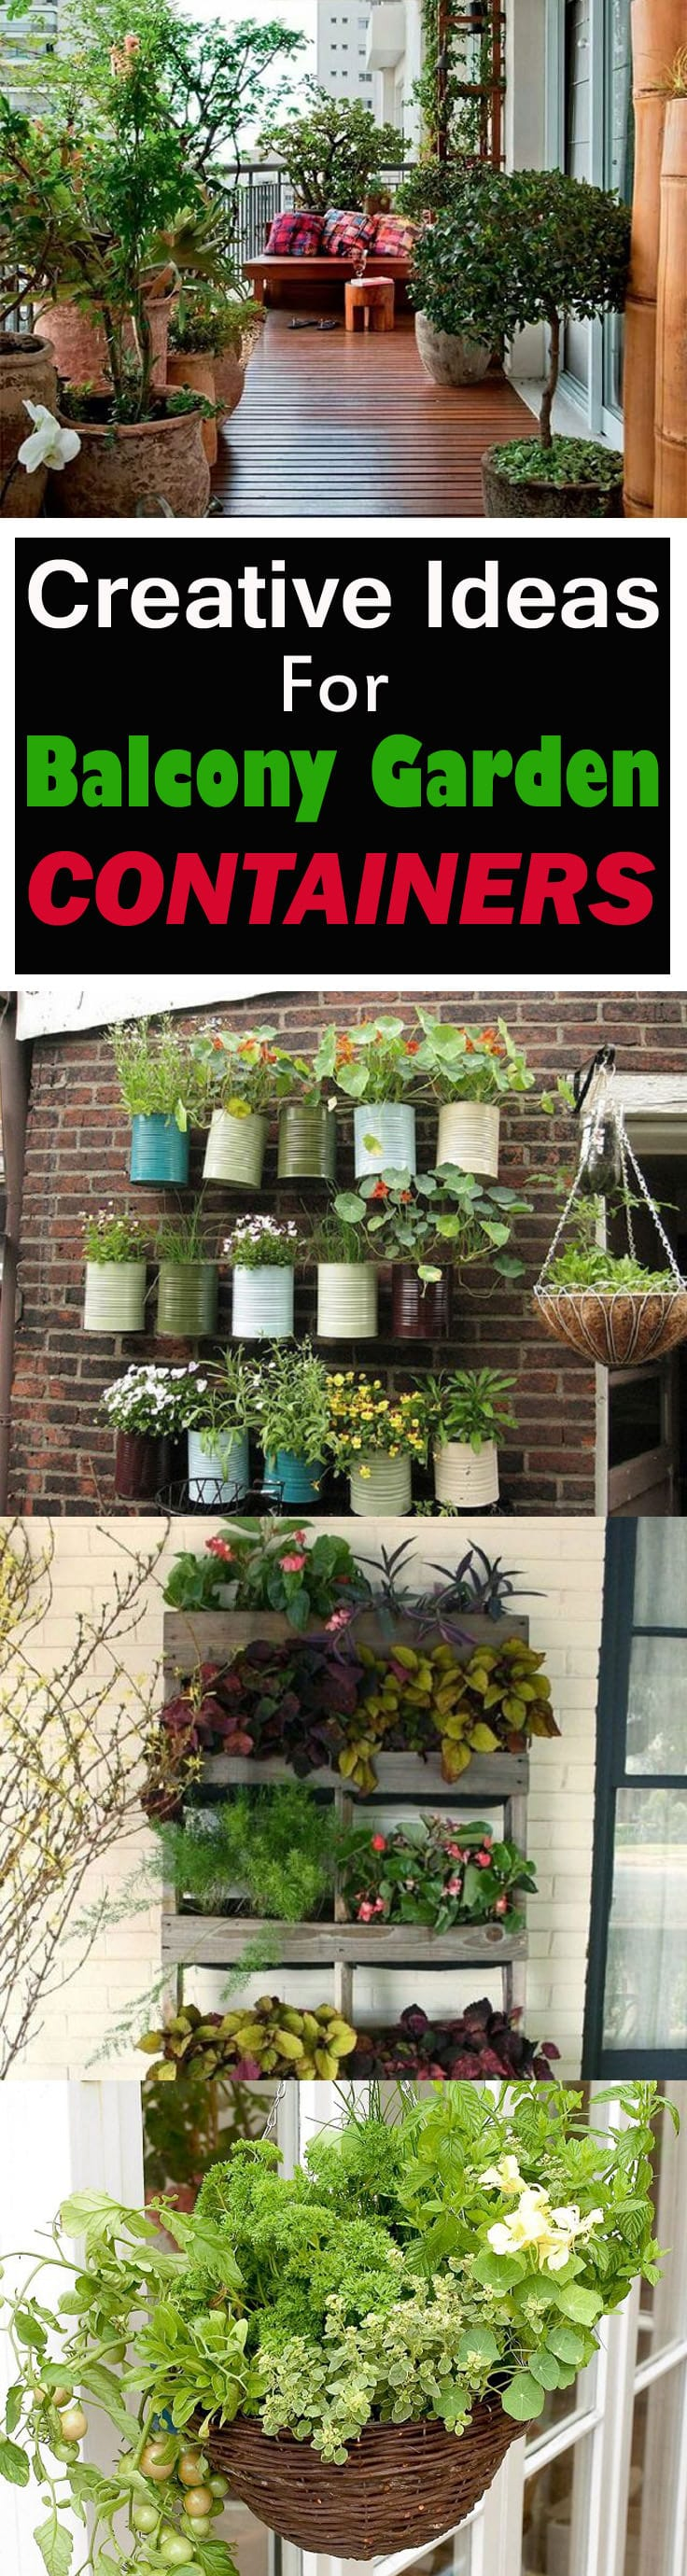 If You Have A Balcony Garden, It Doesnu0027t Mean You Canu0027t